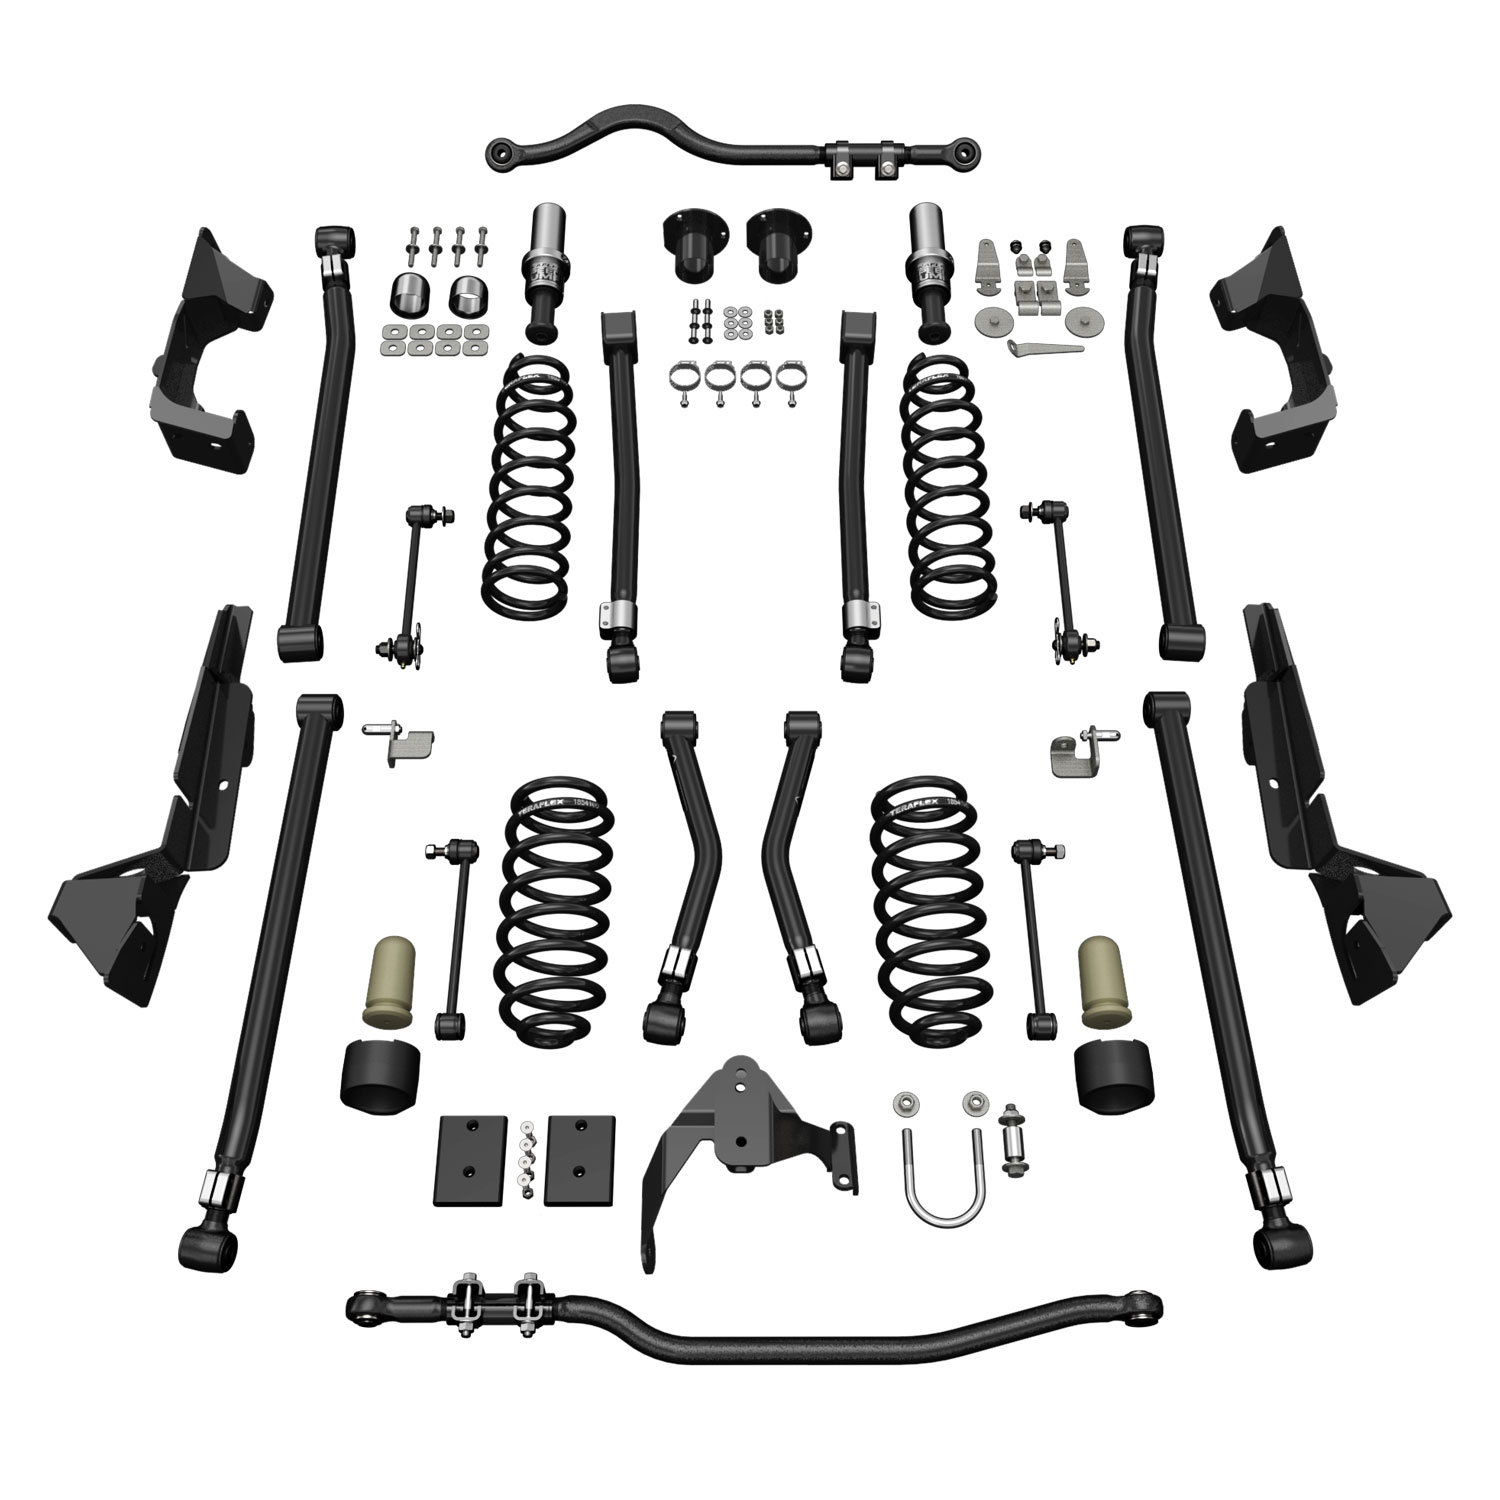 Teraflex Alpine CT4 Suspension System 4in Lift - No Shocks - JK 2DR